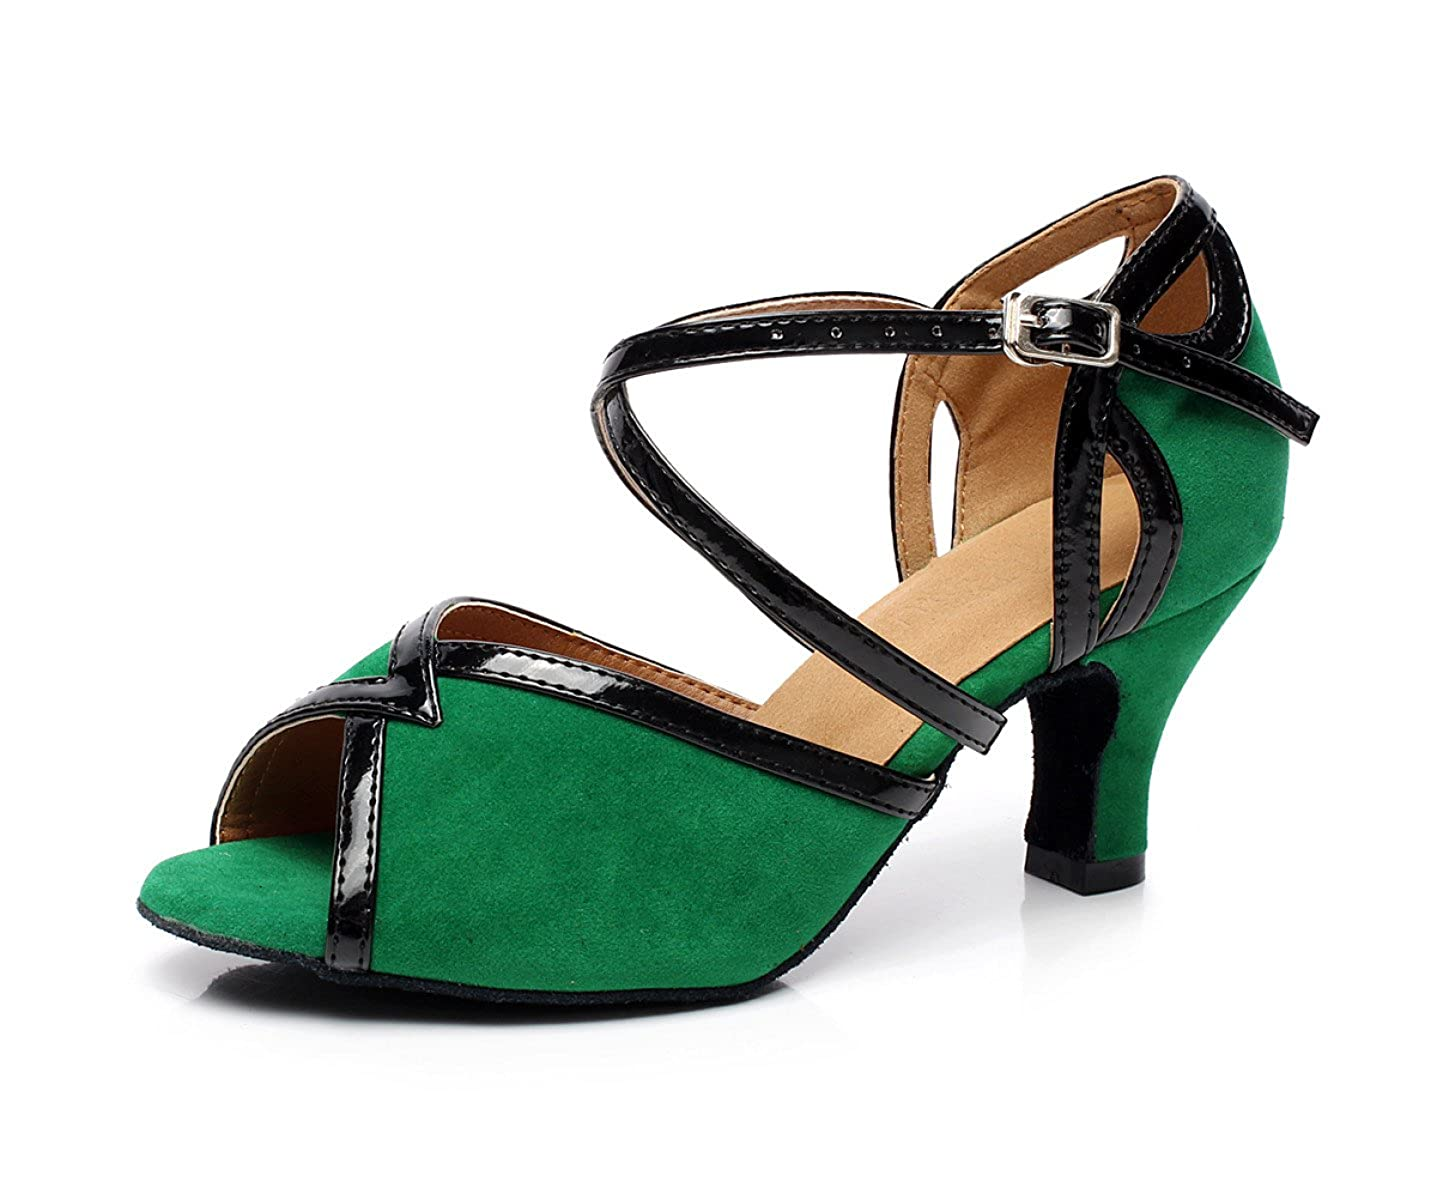 JSHOE Sangle de Salsa Danse Latine Salsa Ballroom Dance de Danse pour Femmes,Green-heeled8cm-UK7.5/EU42/Our43 - 644911d - piero.space